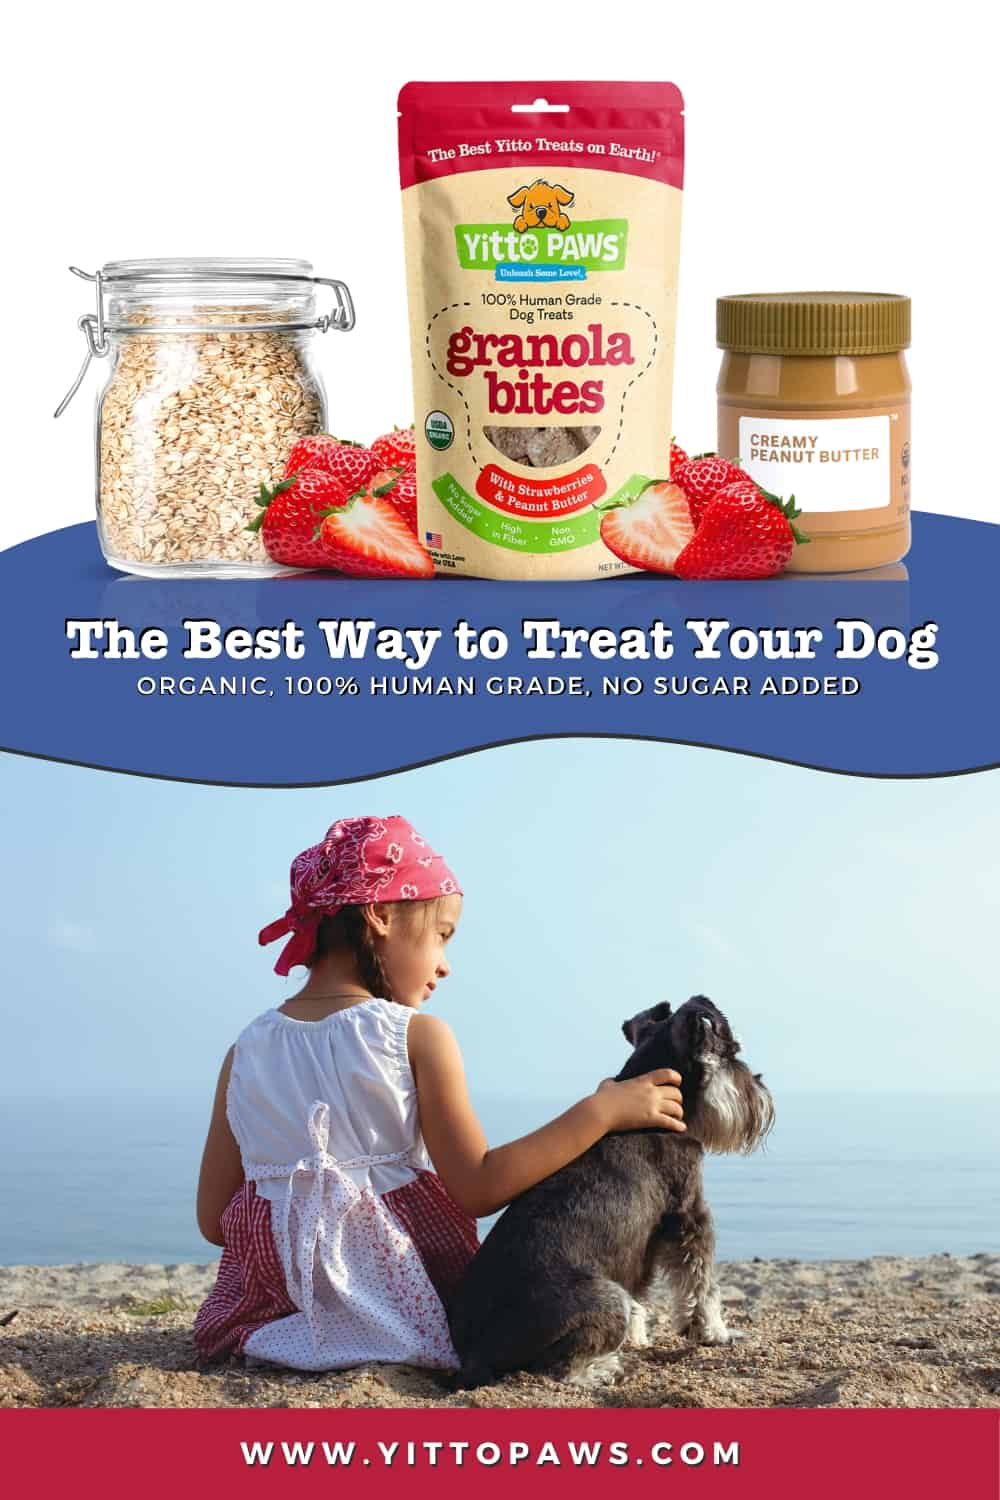 Yitto Paws are the Best Way to Treat Your Dog!